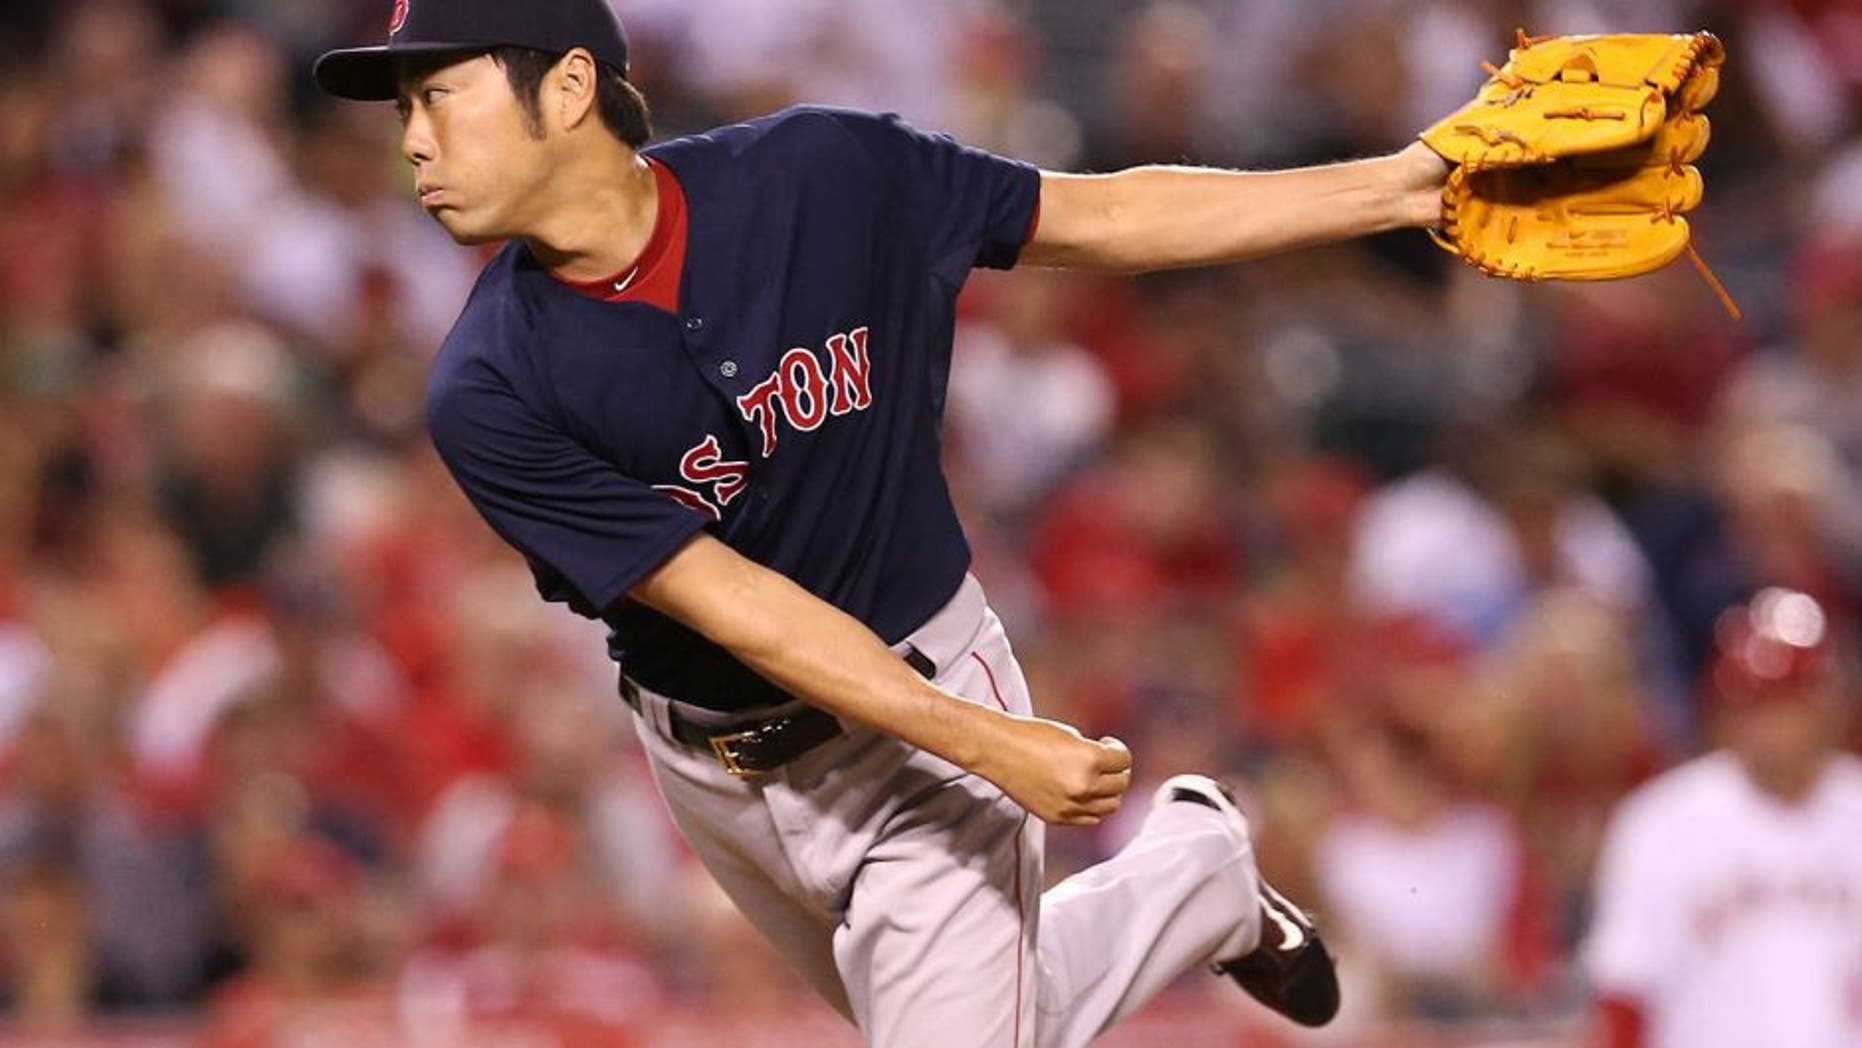 ANAHEIM, CA - JULY 17: Closer Koji Uehara#19 of the Boston Red Sox throws a pitch in the ninth inning the Los Angeles Angels of Anaheim at Angel Stadium of Anaheim on July 17, 2015 in Anaheim, California. The Angels won 1-0. (Photo by Stephen Dunn/Getty Images)